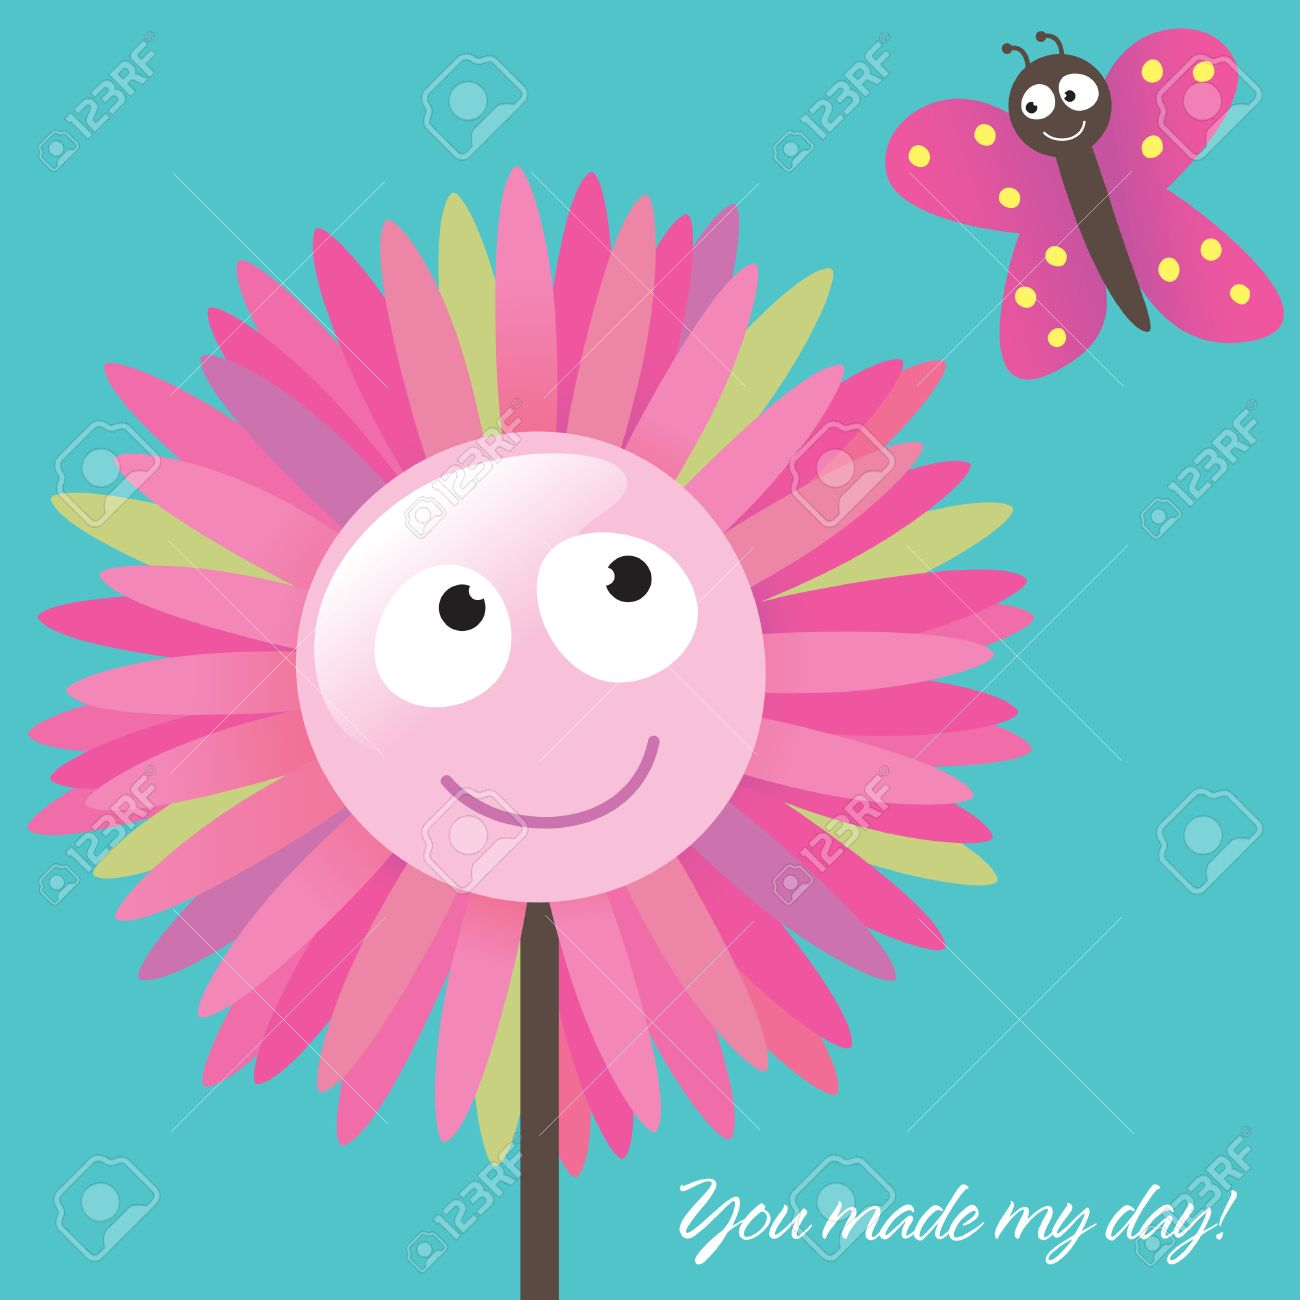 Thank You Card Template (You Made My Day!) Royalty Free Cliparts